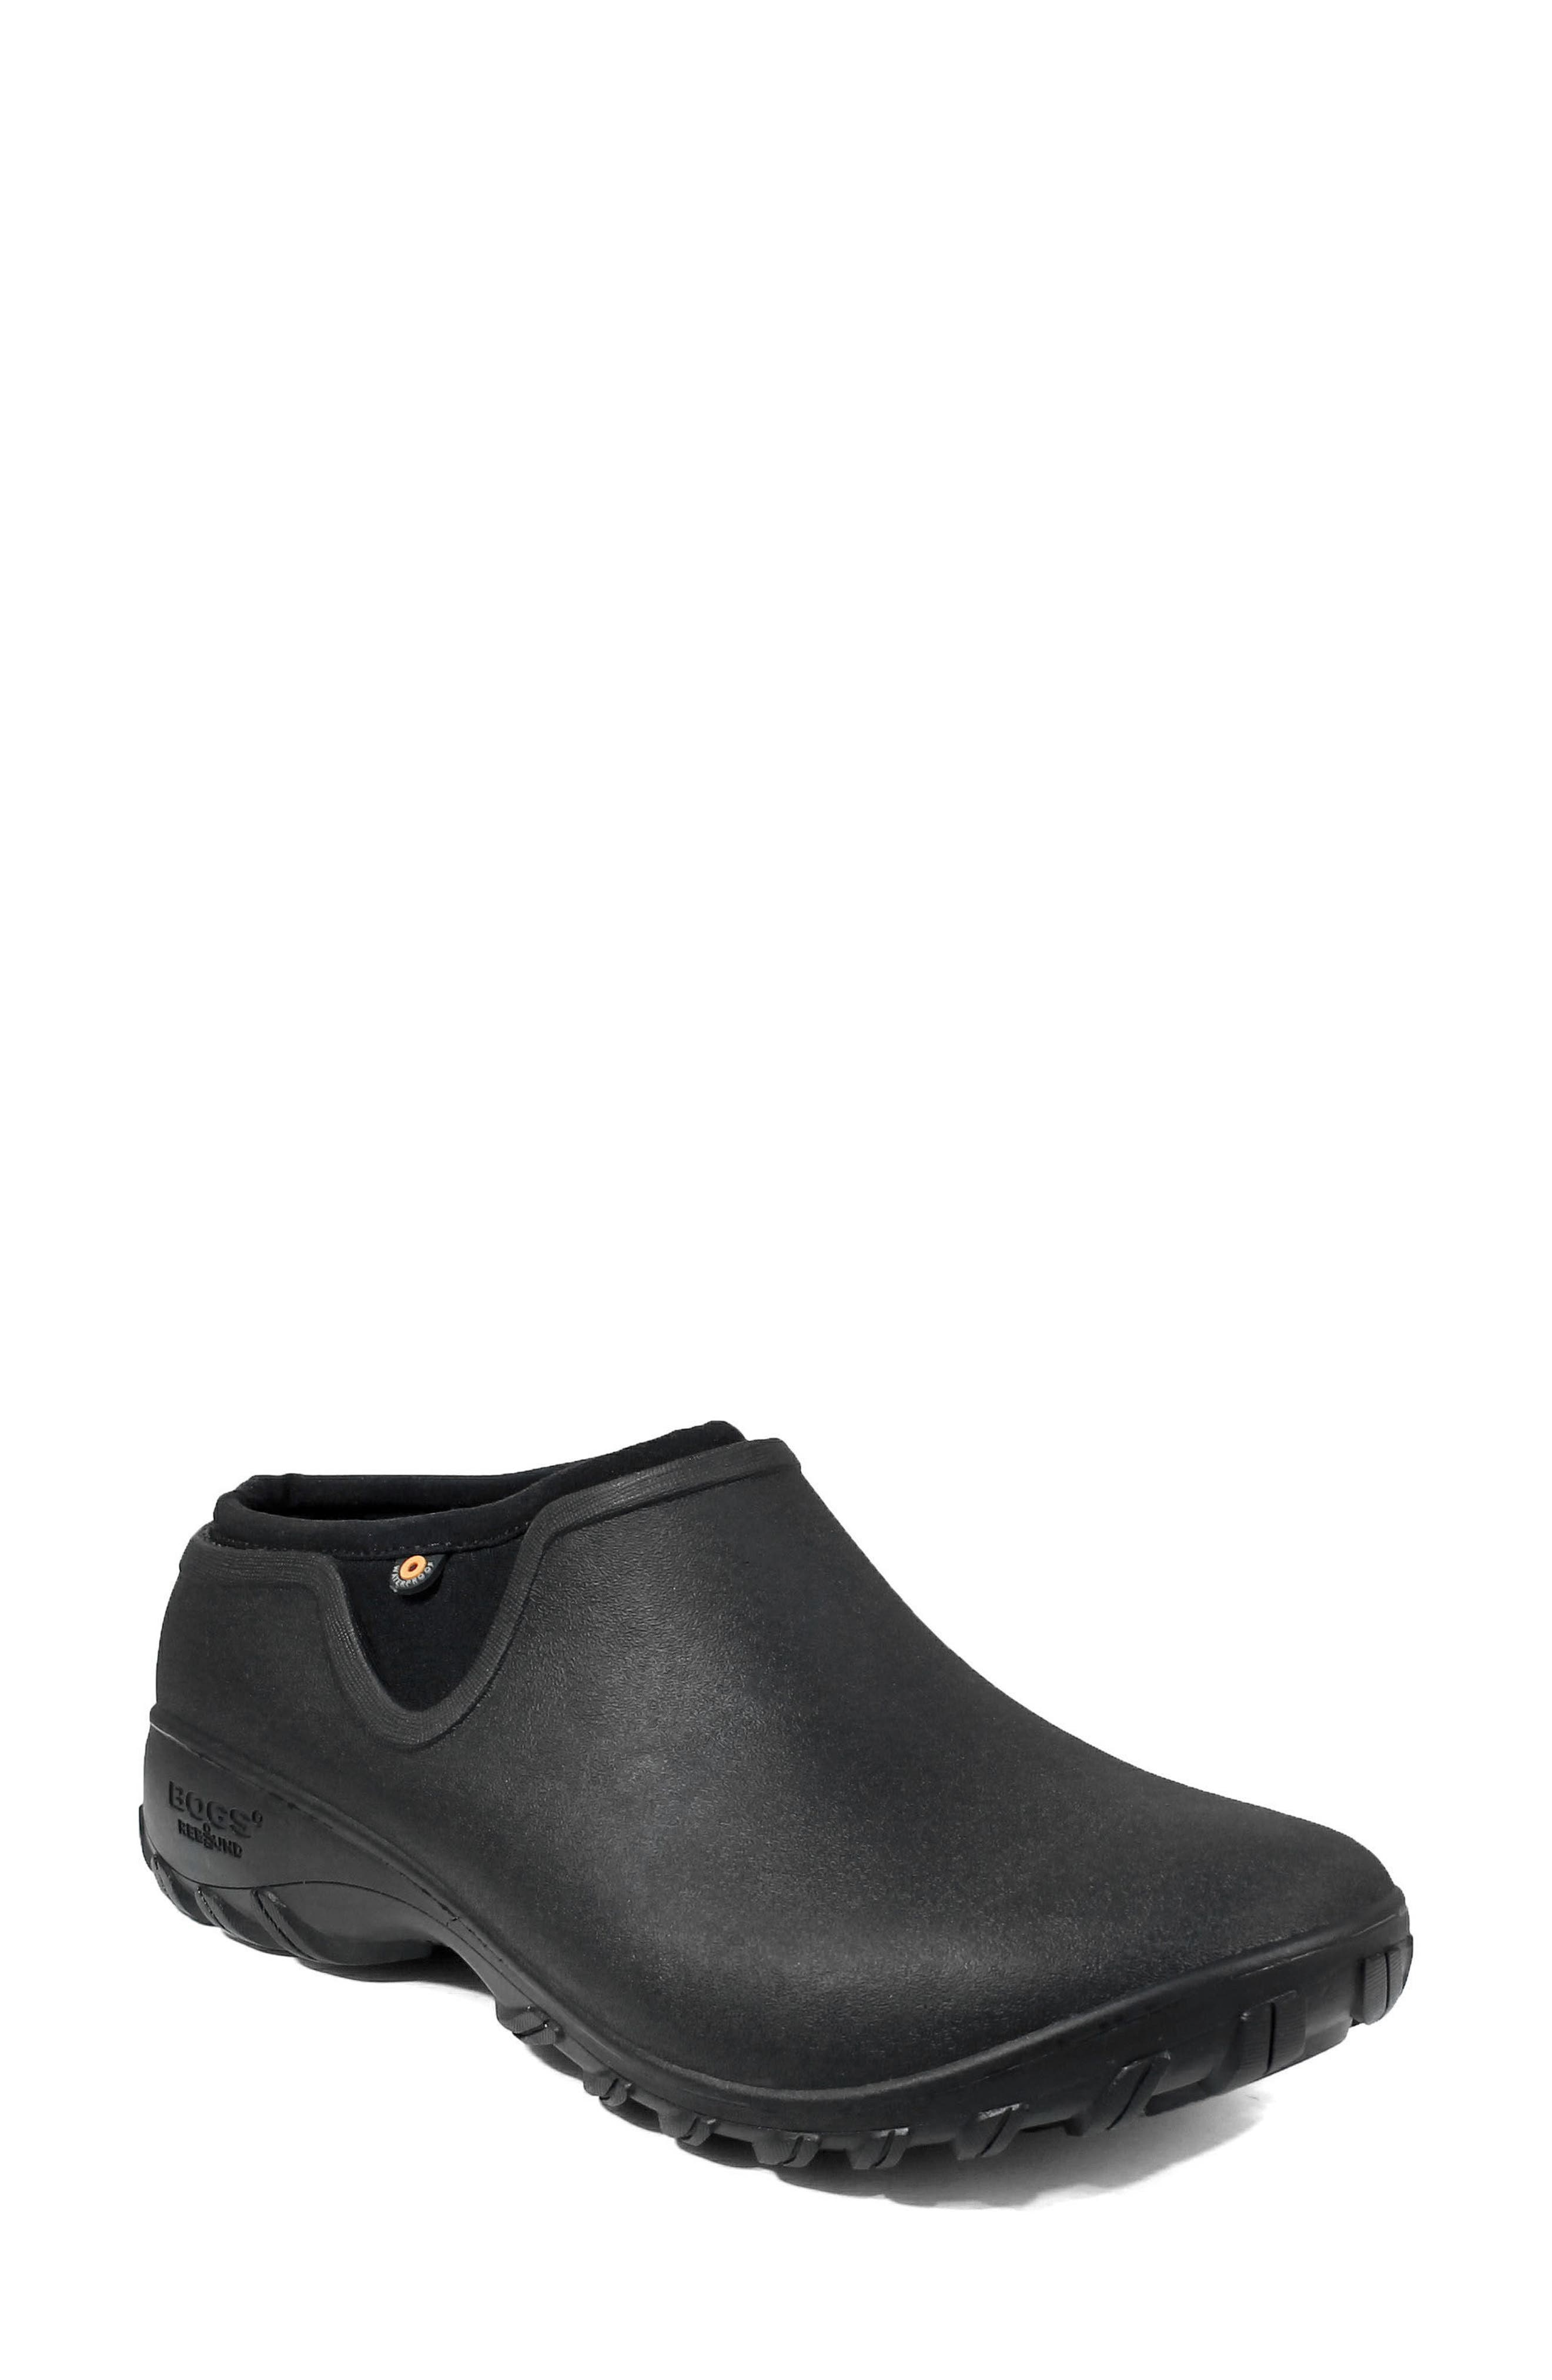 Bogs Sauvie Clog, Black